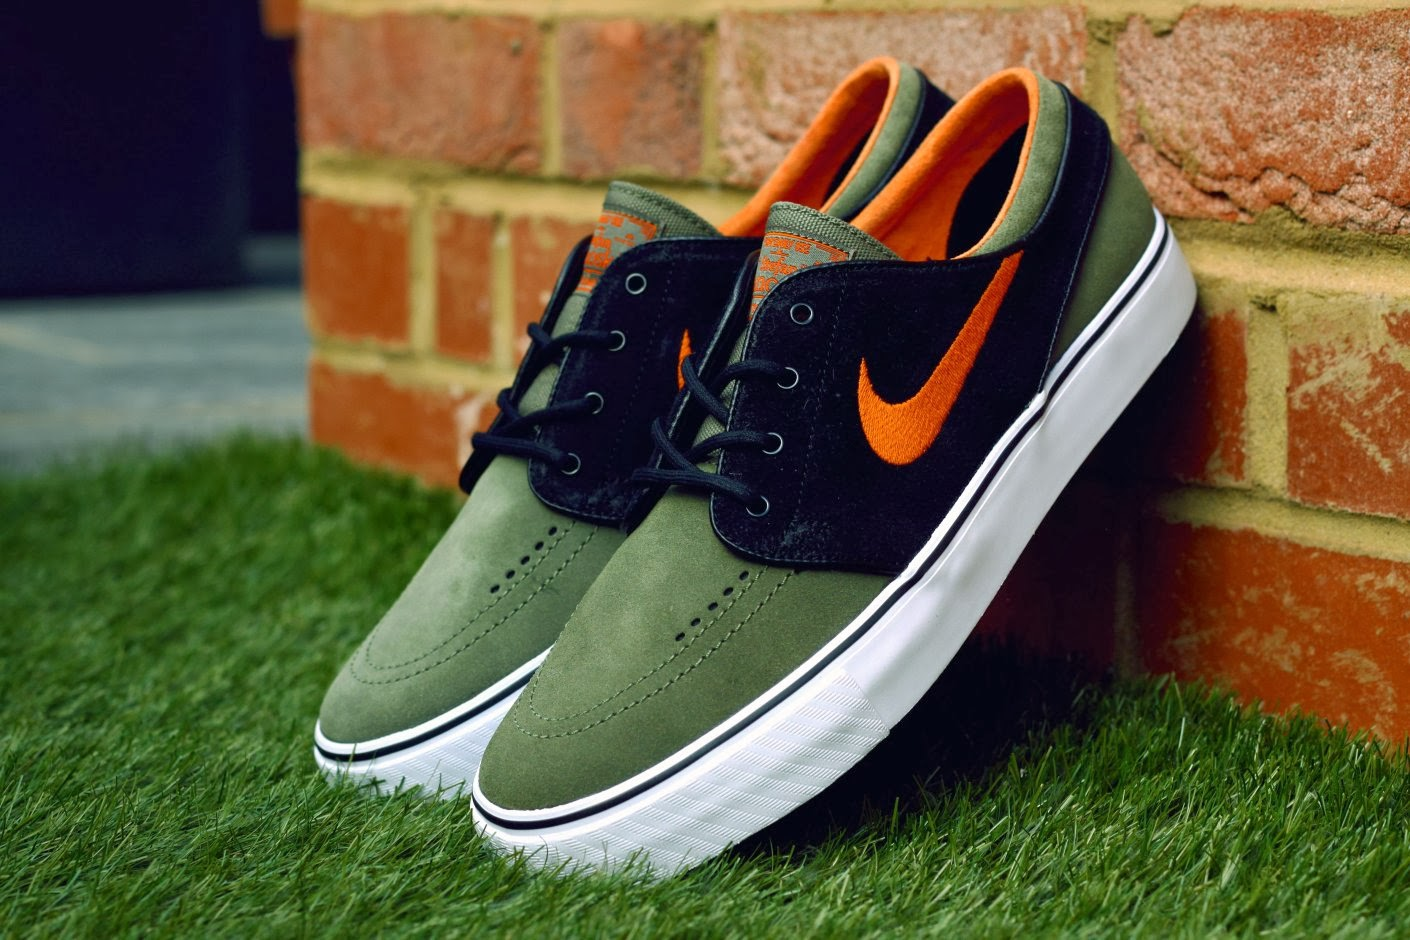 nike stefan janoski sb hd wallpaper. Black Bedroom Furniture Sets. Home Design Ideas